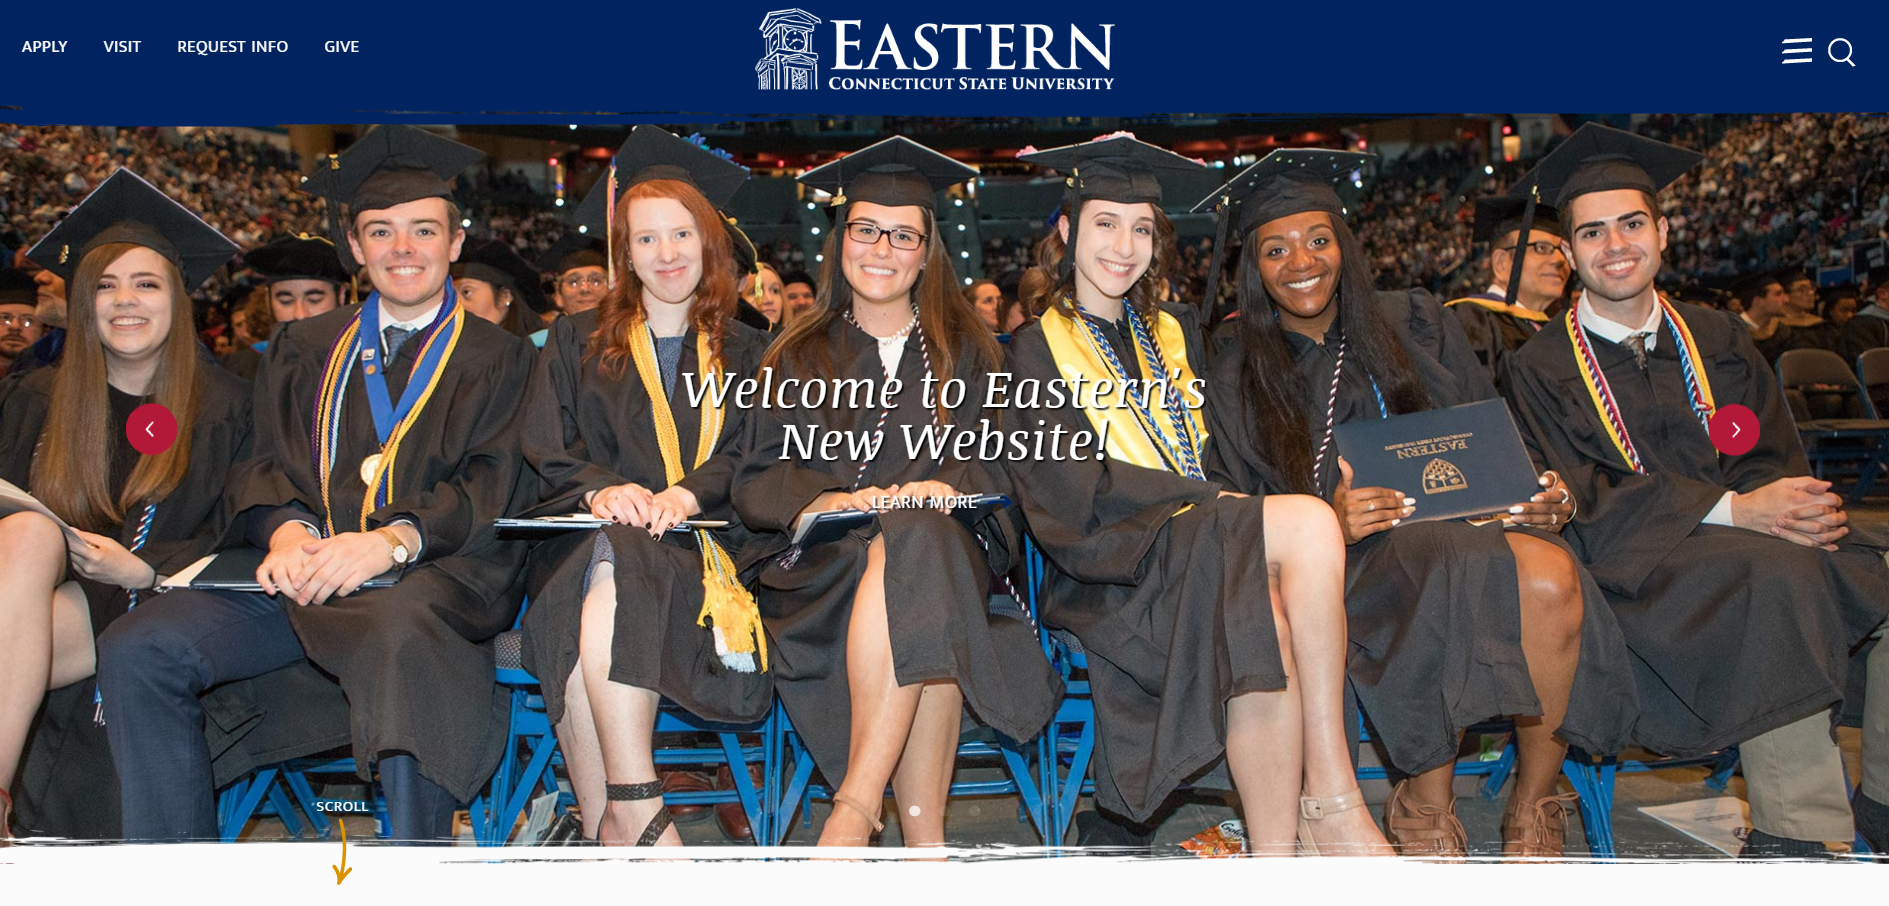 Eastern Connecticut State University website homepage